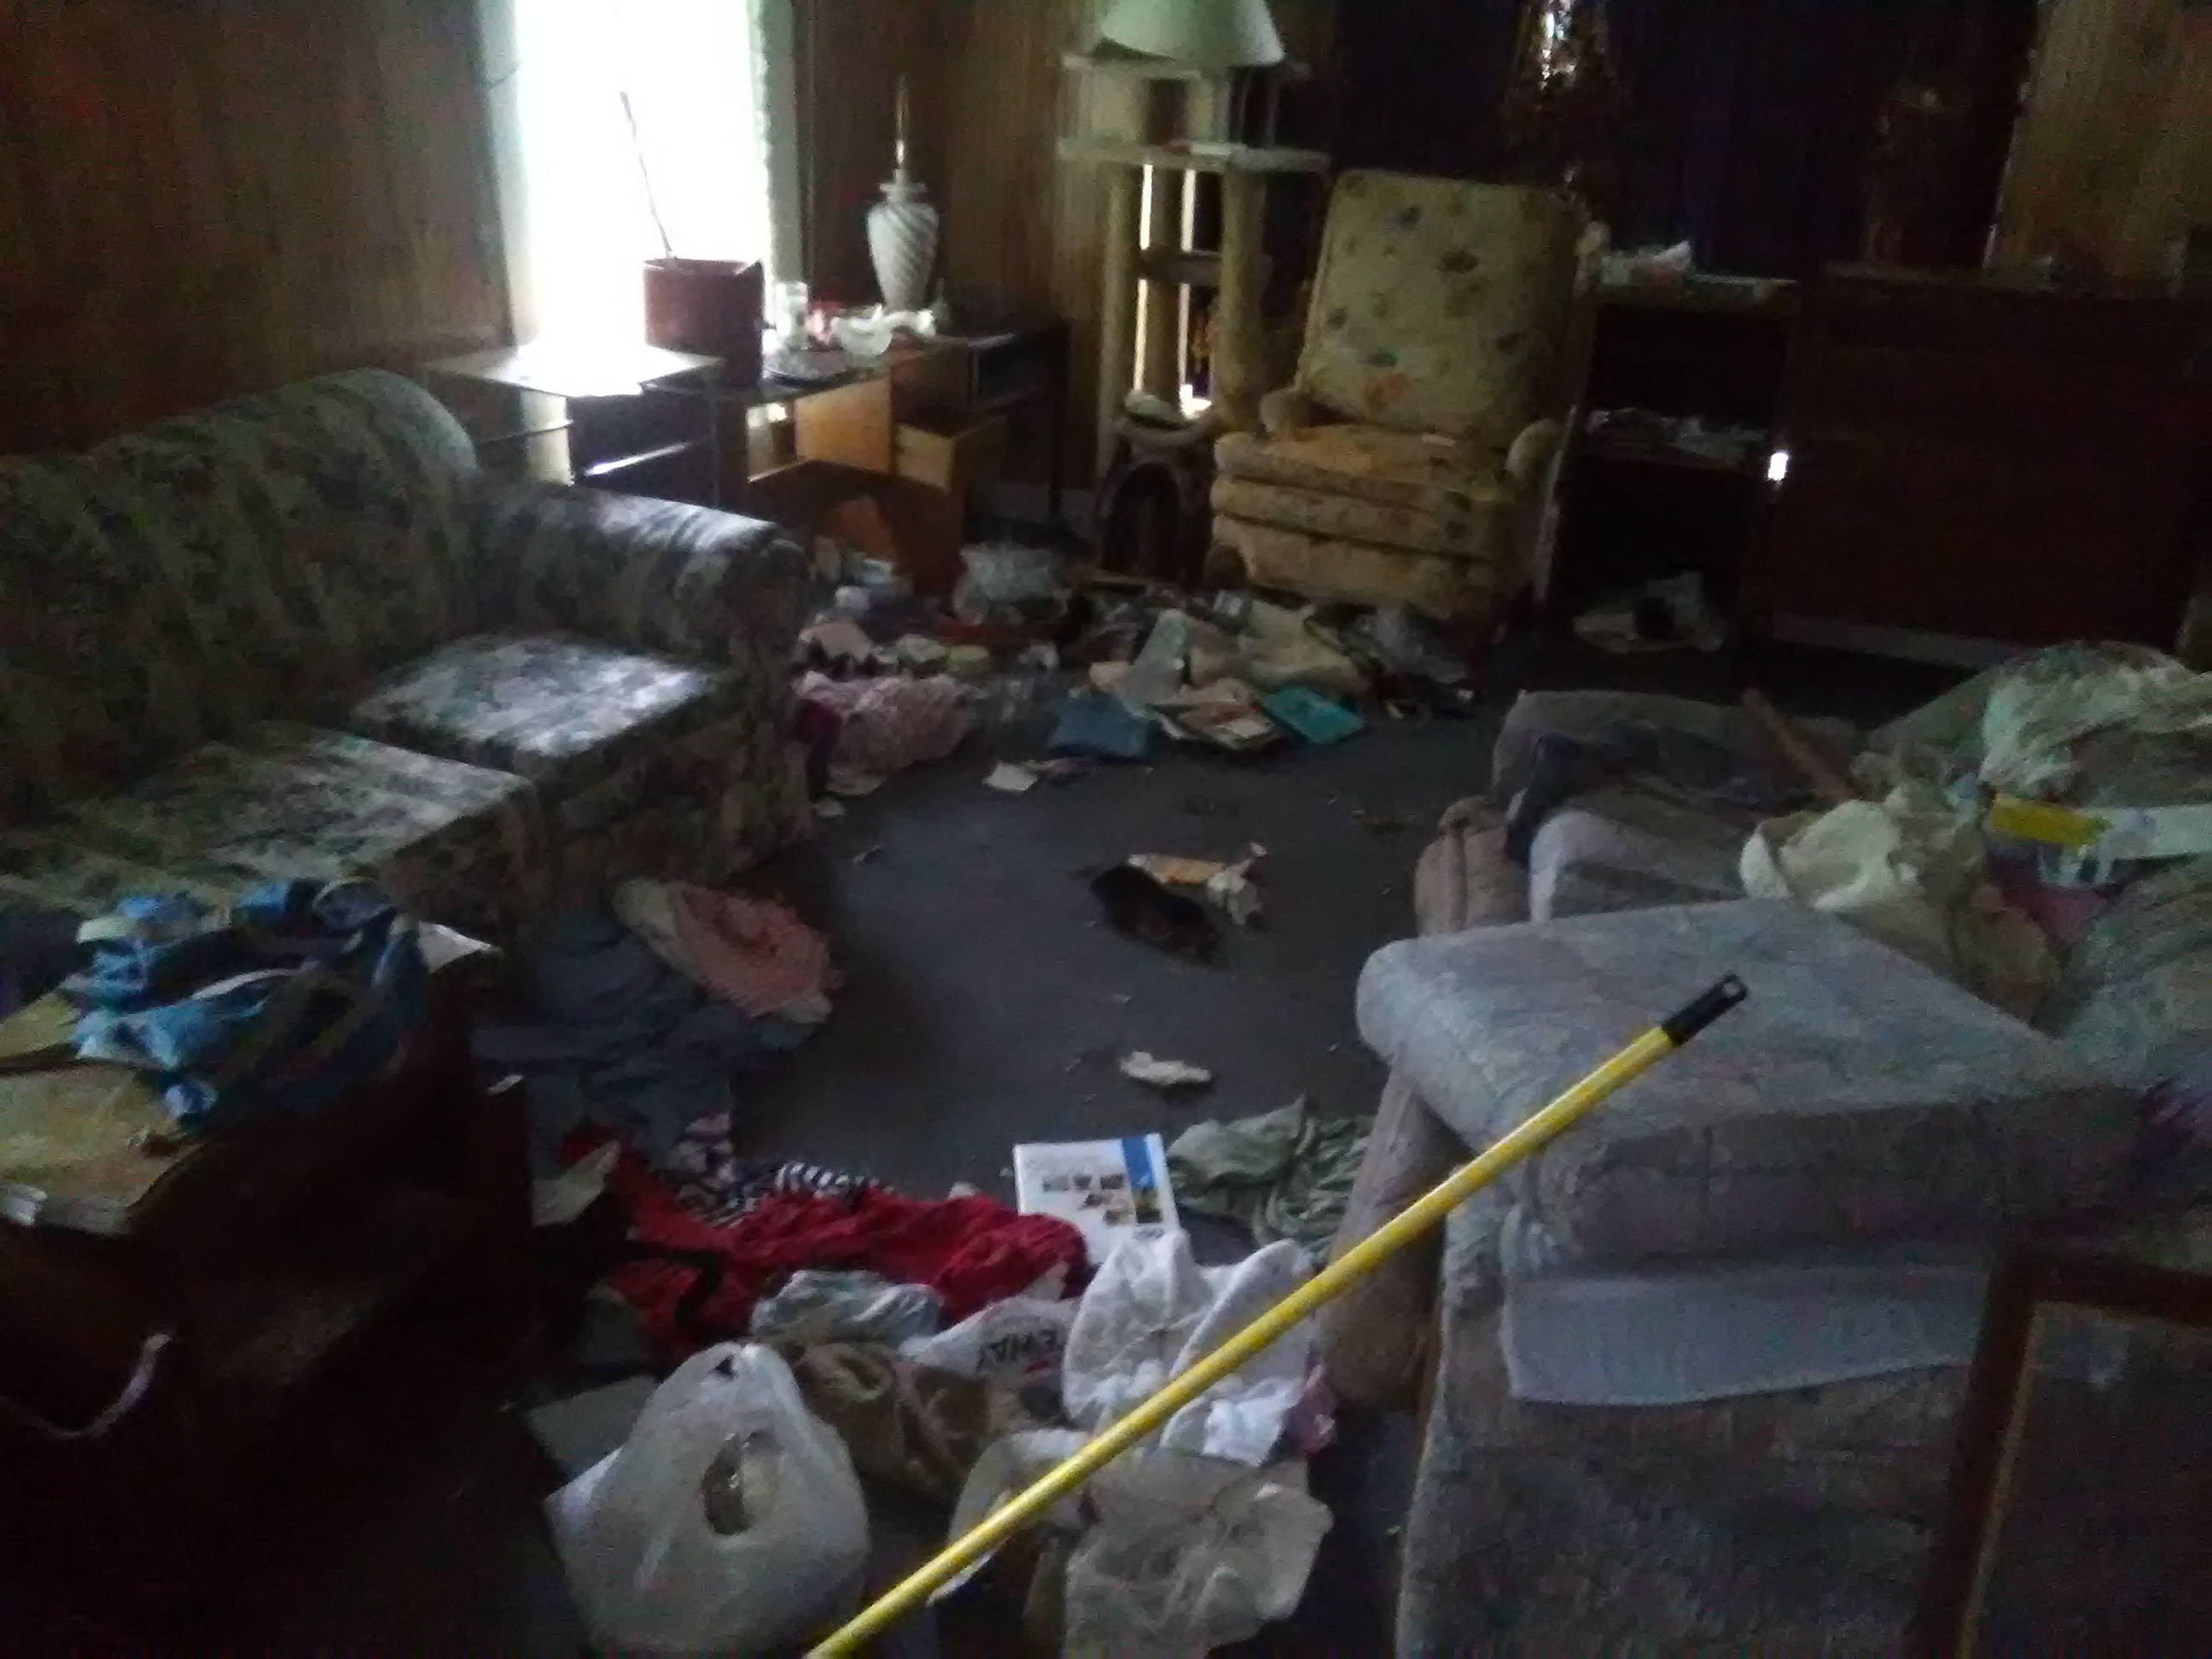 living-room-before-jpg.47417_Country Squat in Kitsap County, WA_Squatting_Squat the Planet_11:03 AM